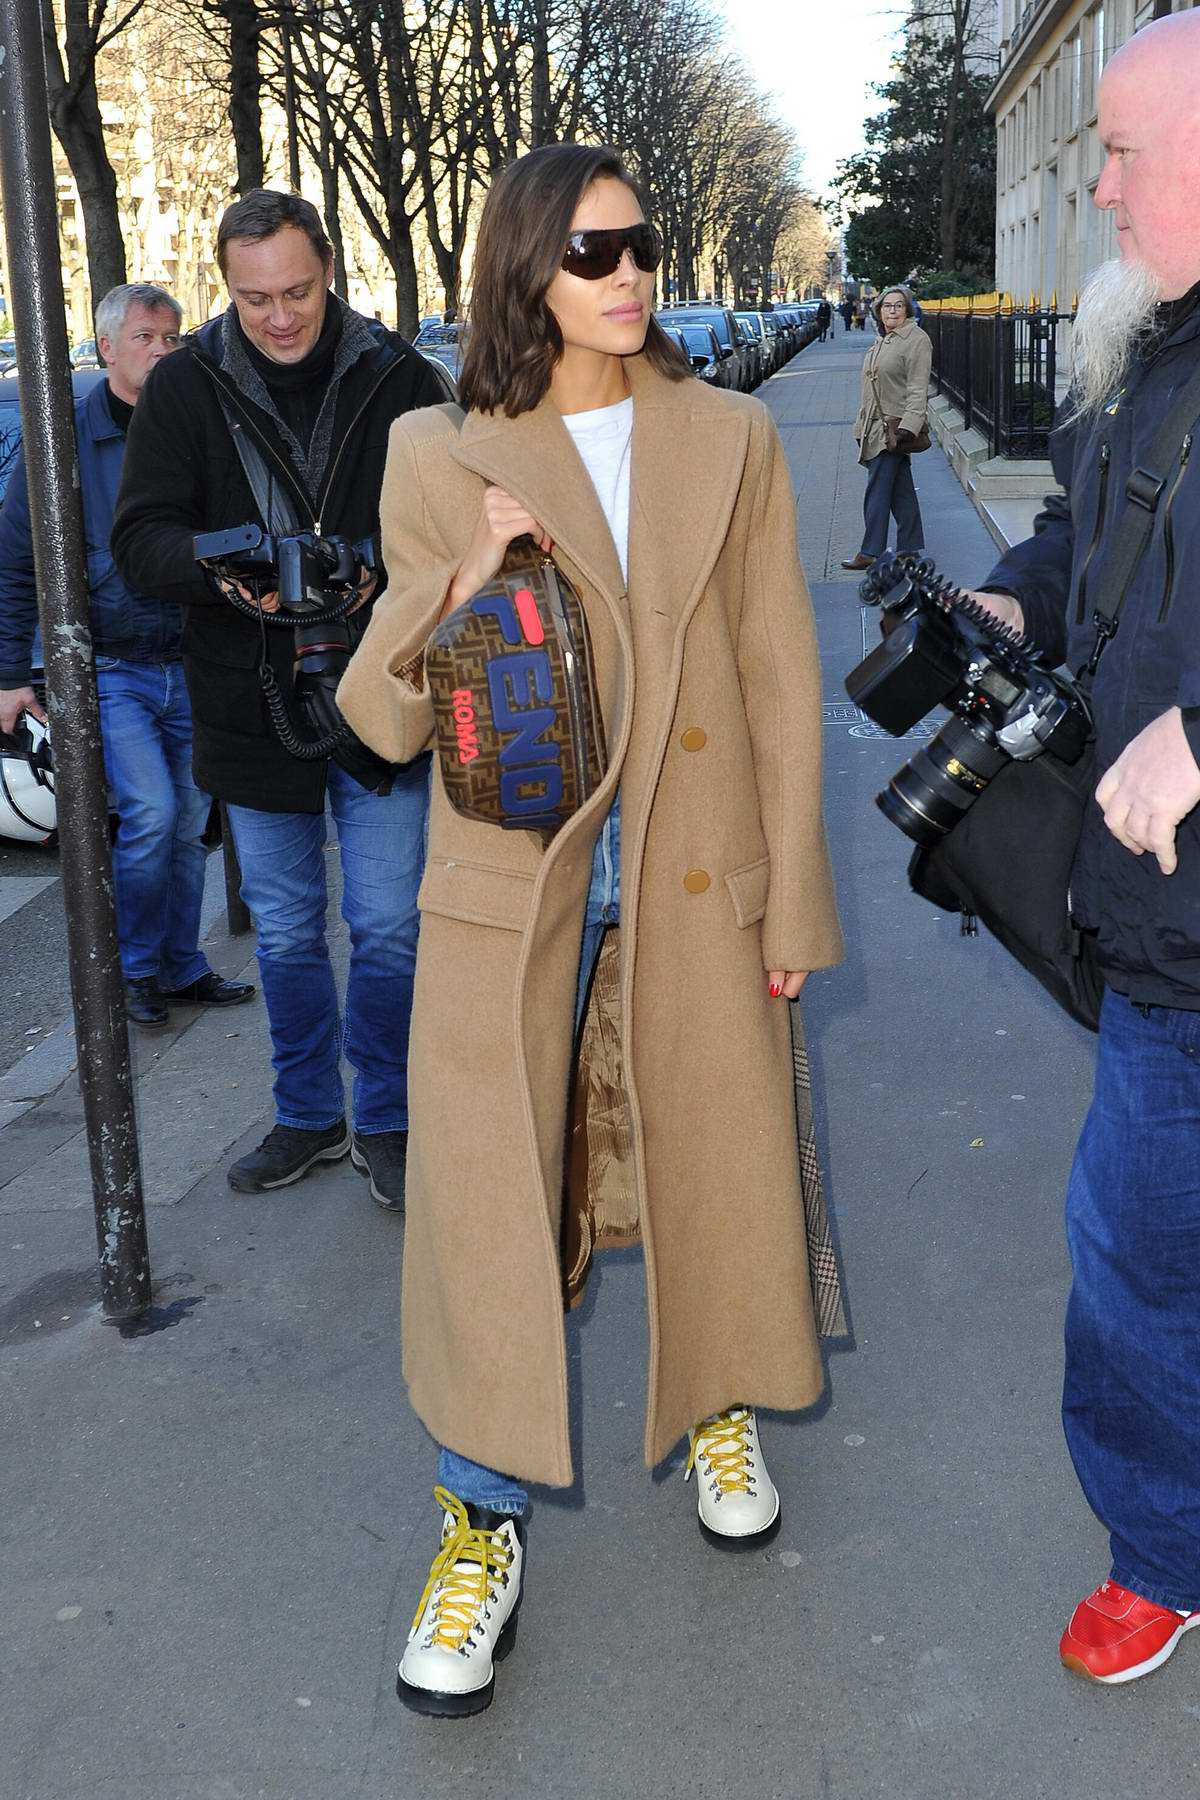 Olivia Culpo spotted in a brown long coat while leaving l'Avenue restaurant in Paris, France